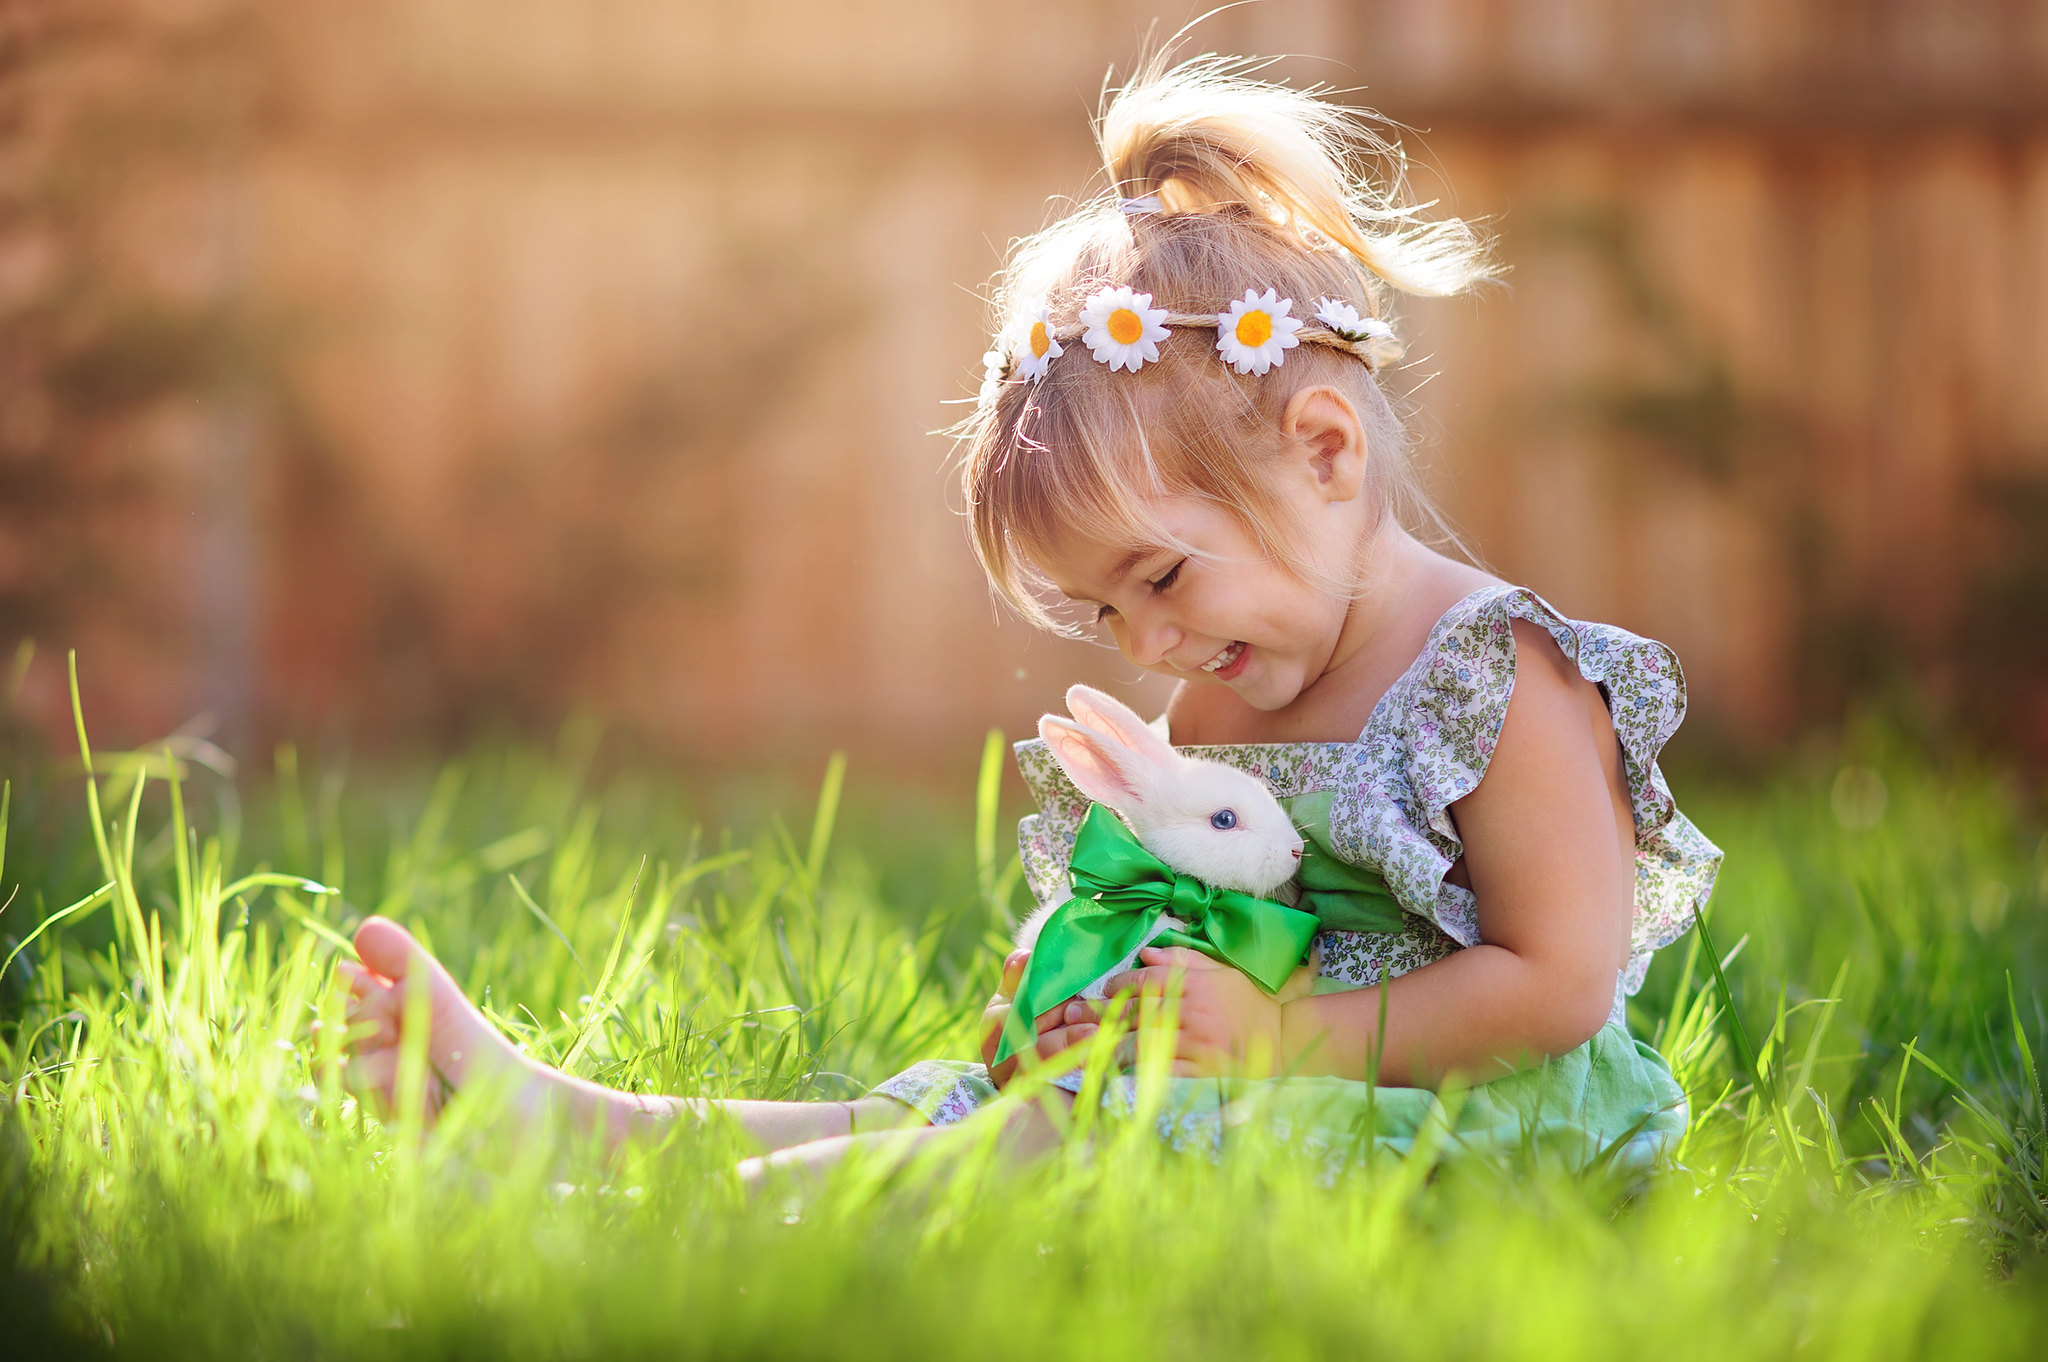 A young girl with flowers in her hair sits in sun with her pet rabbit